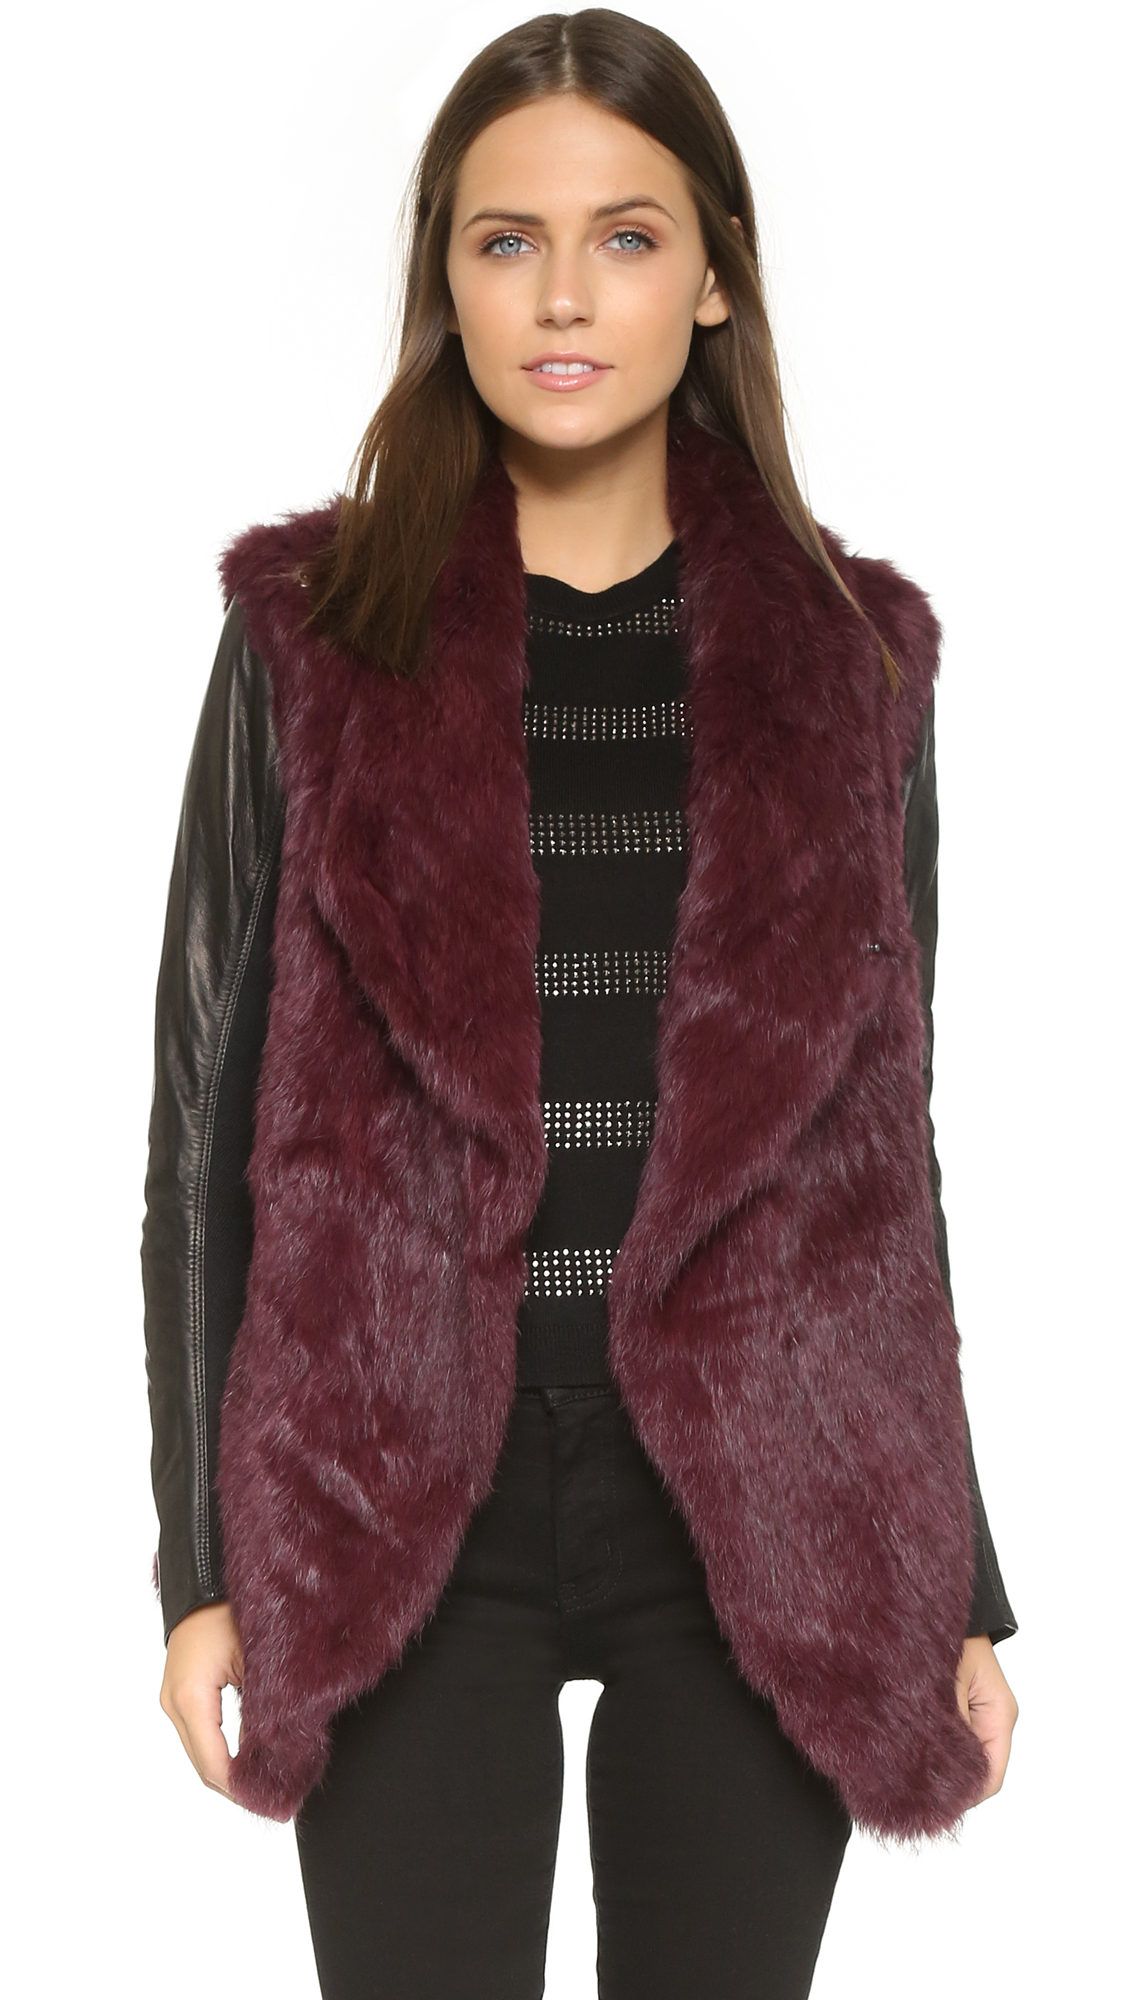 Super chic shaggy faux fur coat with long sleeve&open front. Hibluco Women's Winter Long Sleeve Pullover Coat Faux Fur Sweater Shirt. by Hibluco. $ $ 23 99 $ Prime. FREE Shipping on eligible orders. Some sizes/colors are Prime eligible. See Details. Promotion Available See Details.